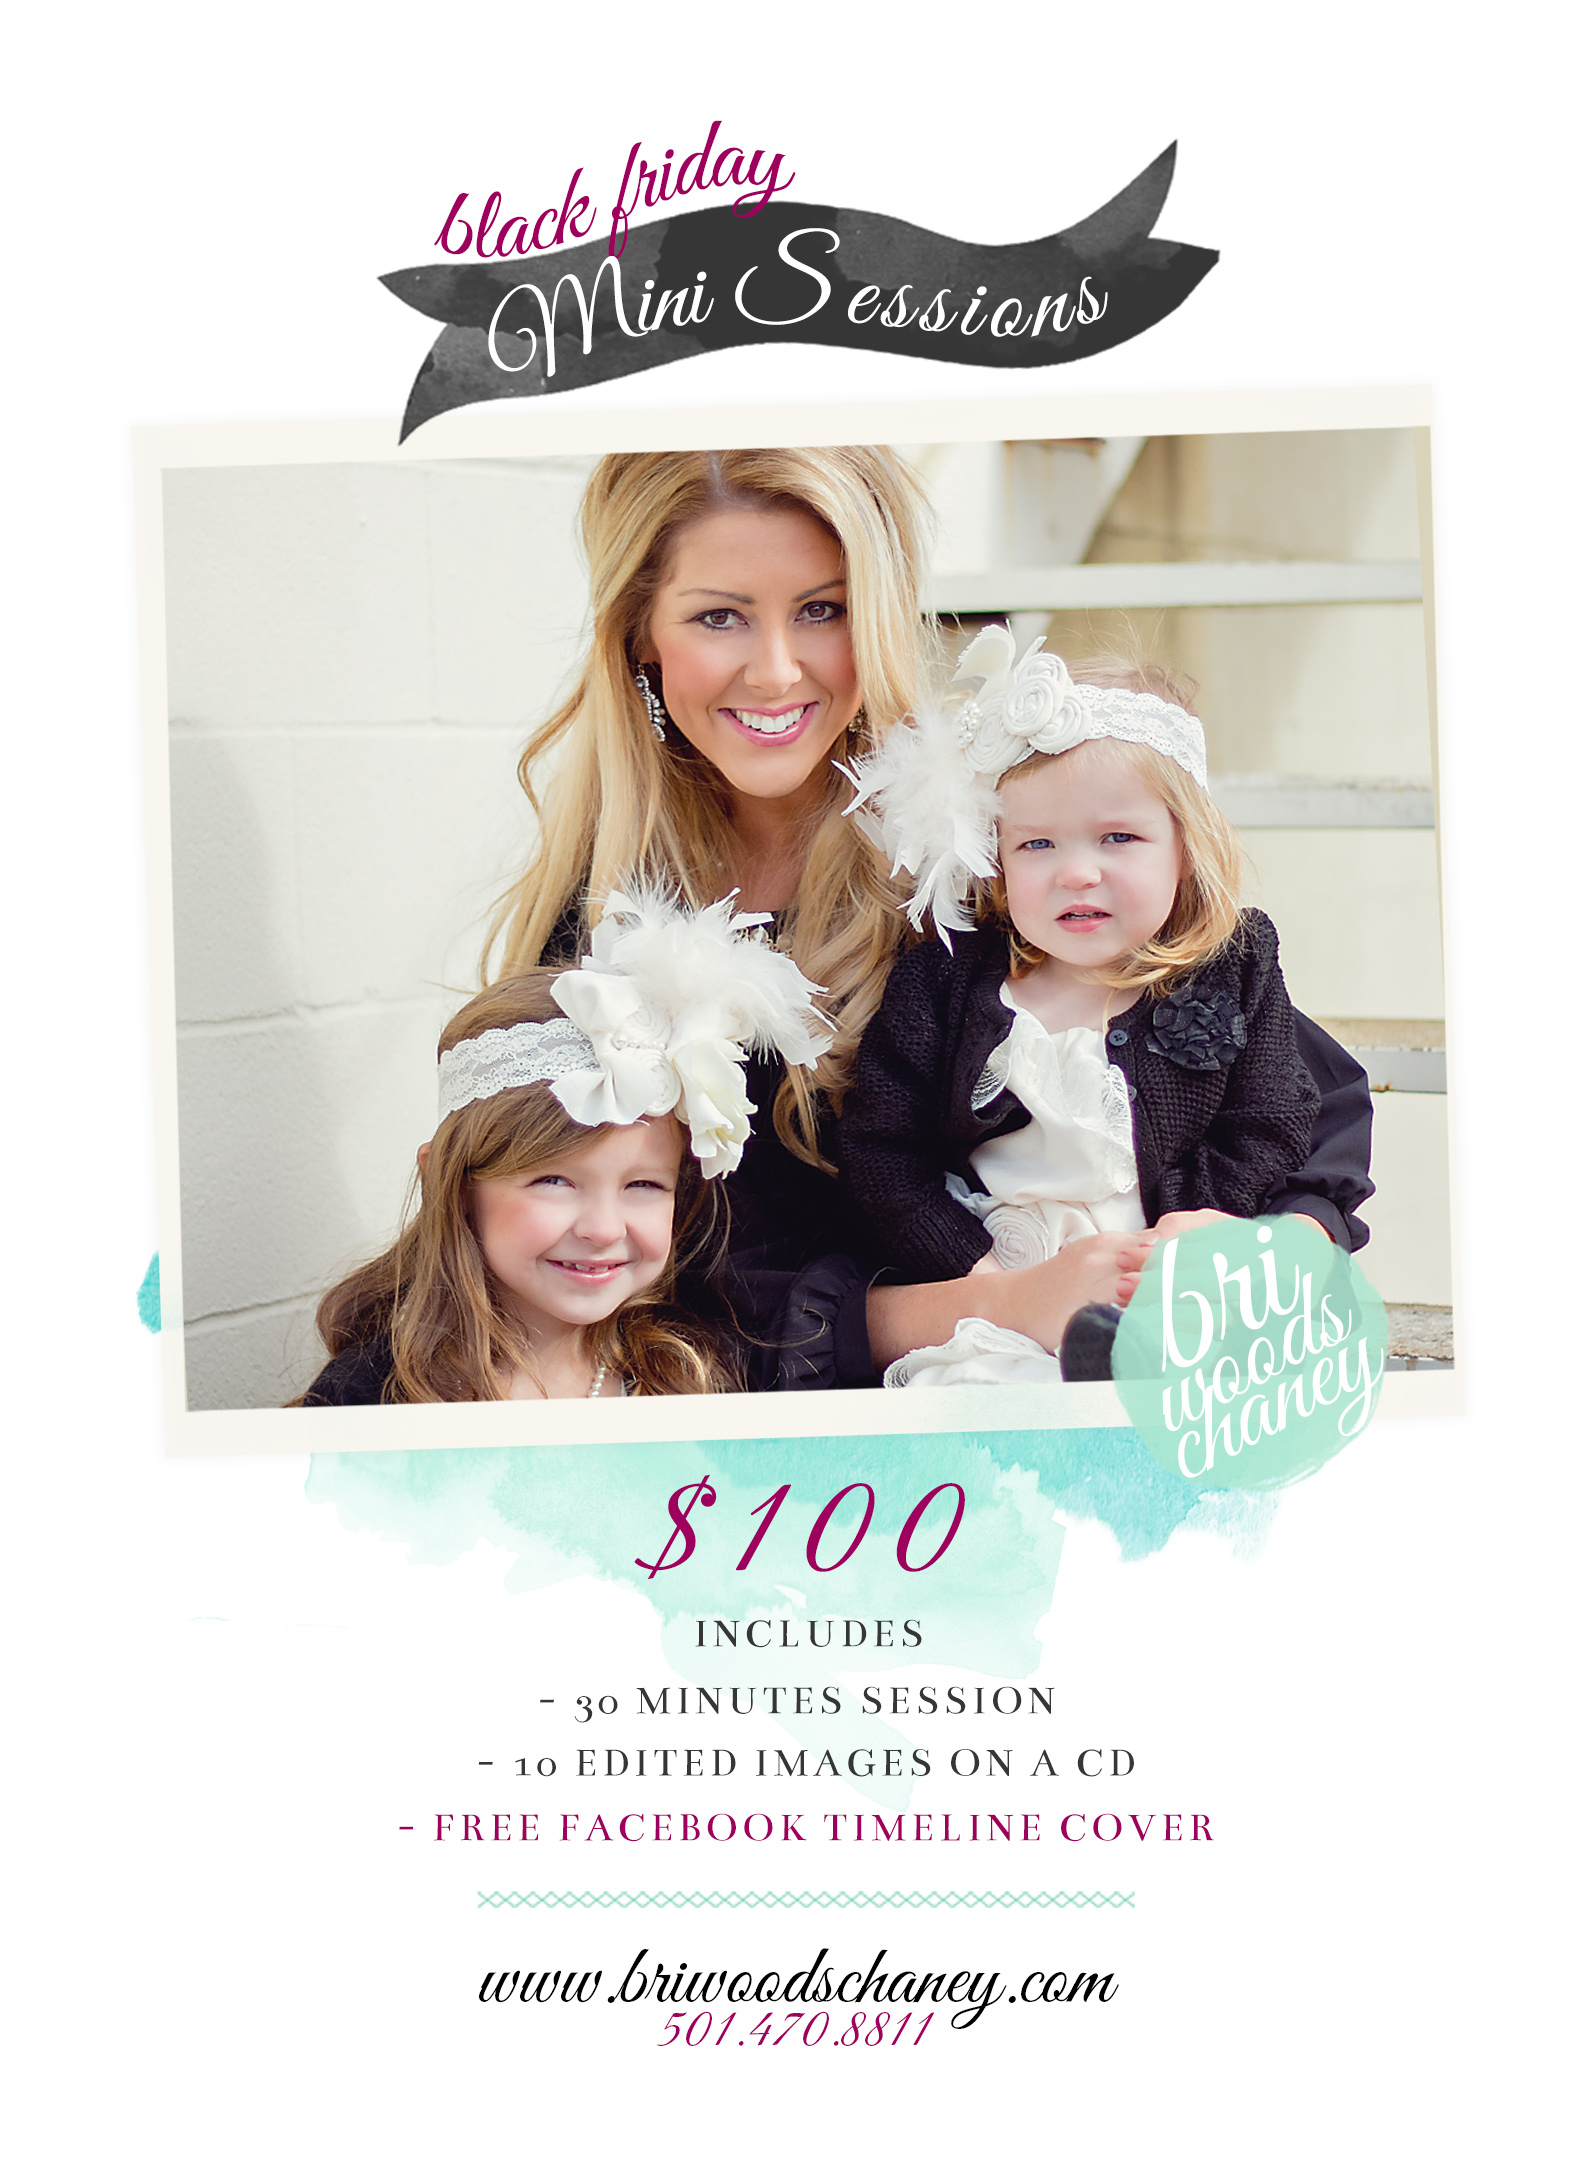 Black Friday Sale Bri Woods Chaney Photography Mini Sessions Arkansas